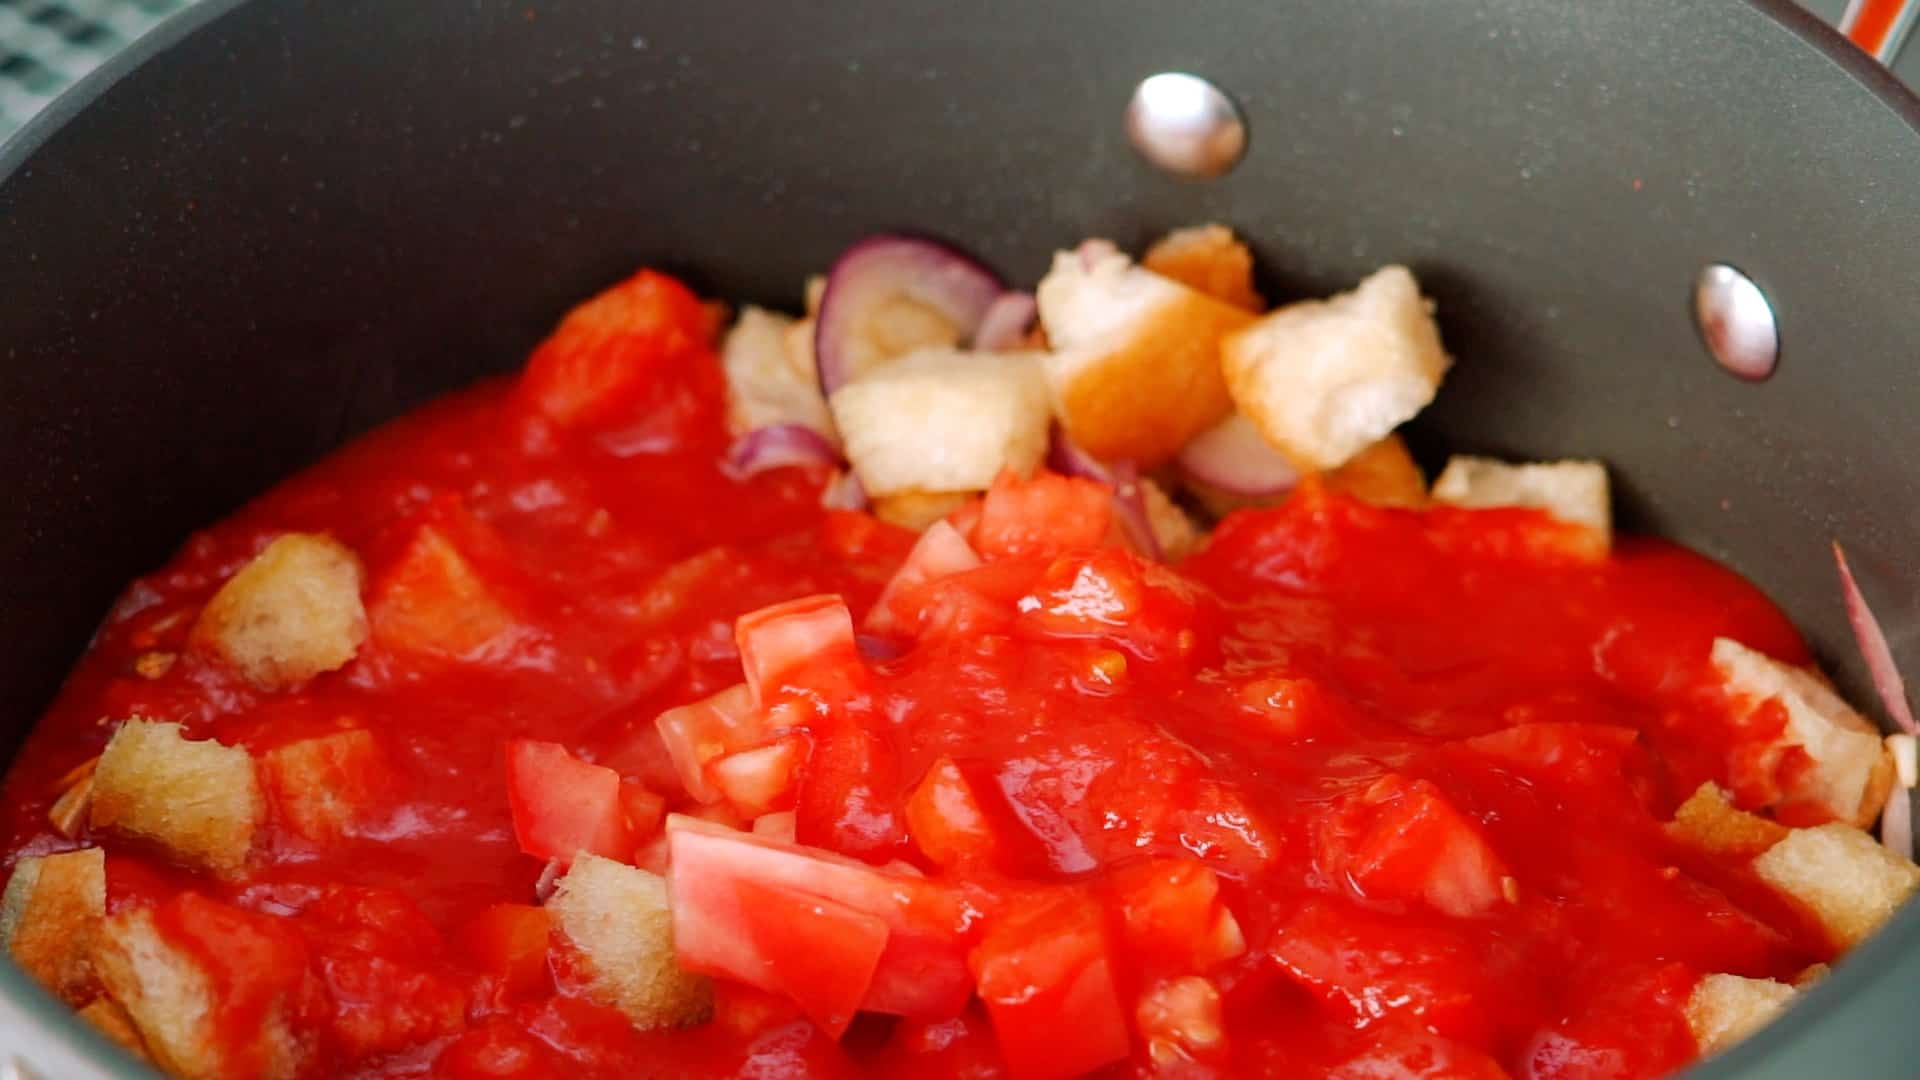 Adding tomatoes to sautéed bread.